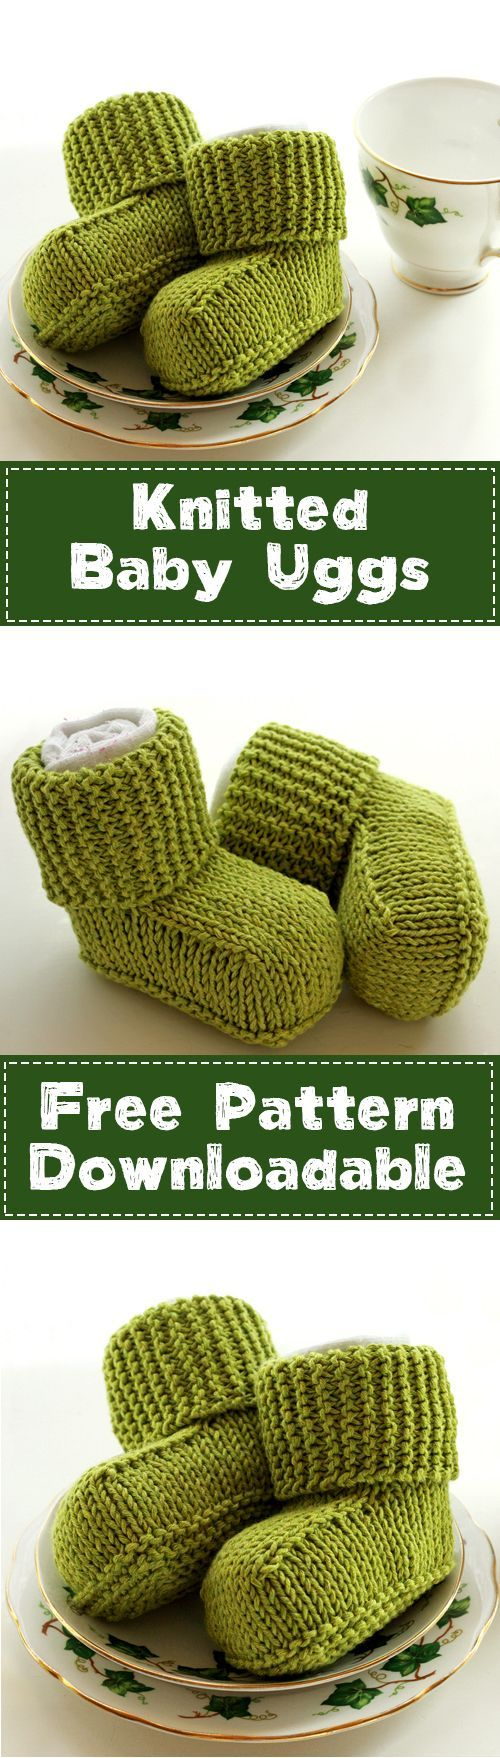 Downloadable PDF free knitting pattern for baby uggs. A cute free pattern for modern looking baby booties. Knit in one piece to minimise seaming/weaving in: